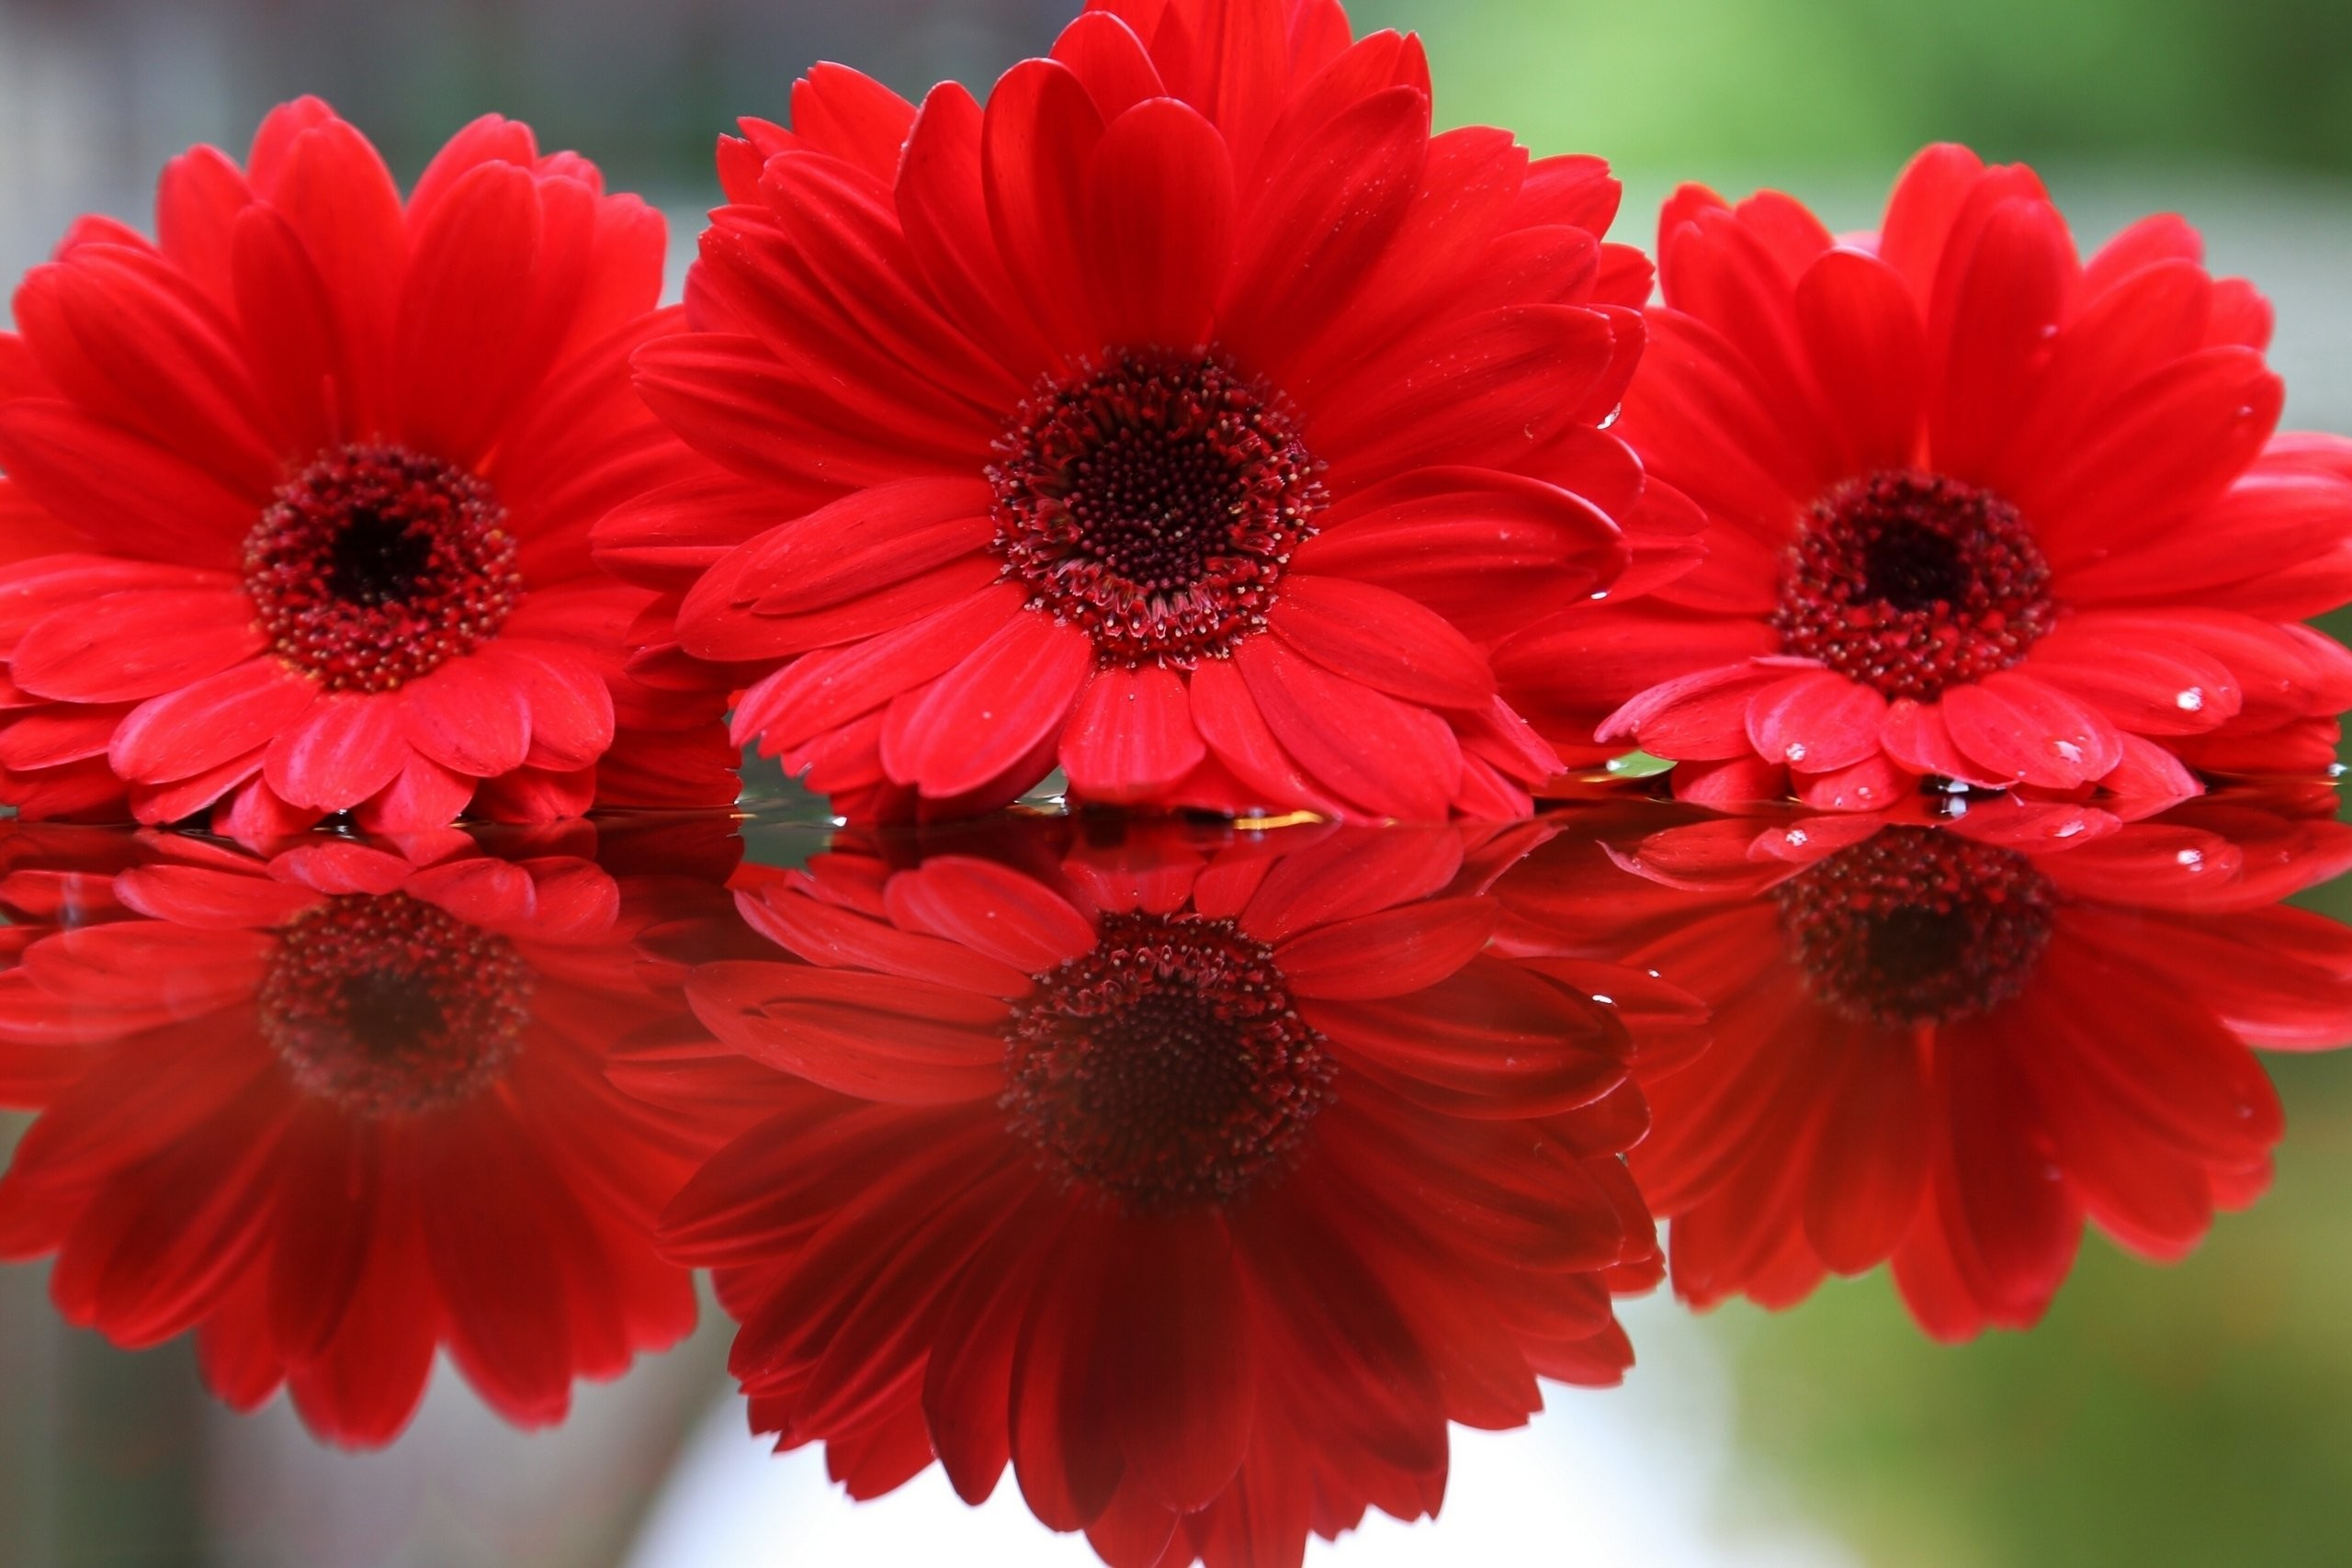 Flowers, Red, Hd Flower Wallpapers, Mobile Wallpaper,gerberas, - Flowers Images Download For Mobile - HD Wallpaper